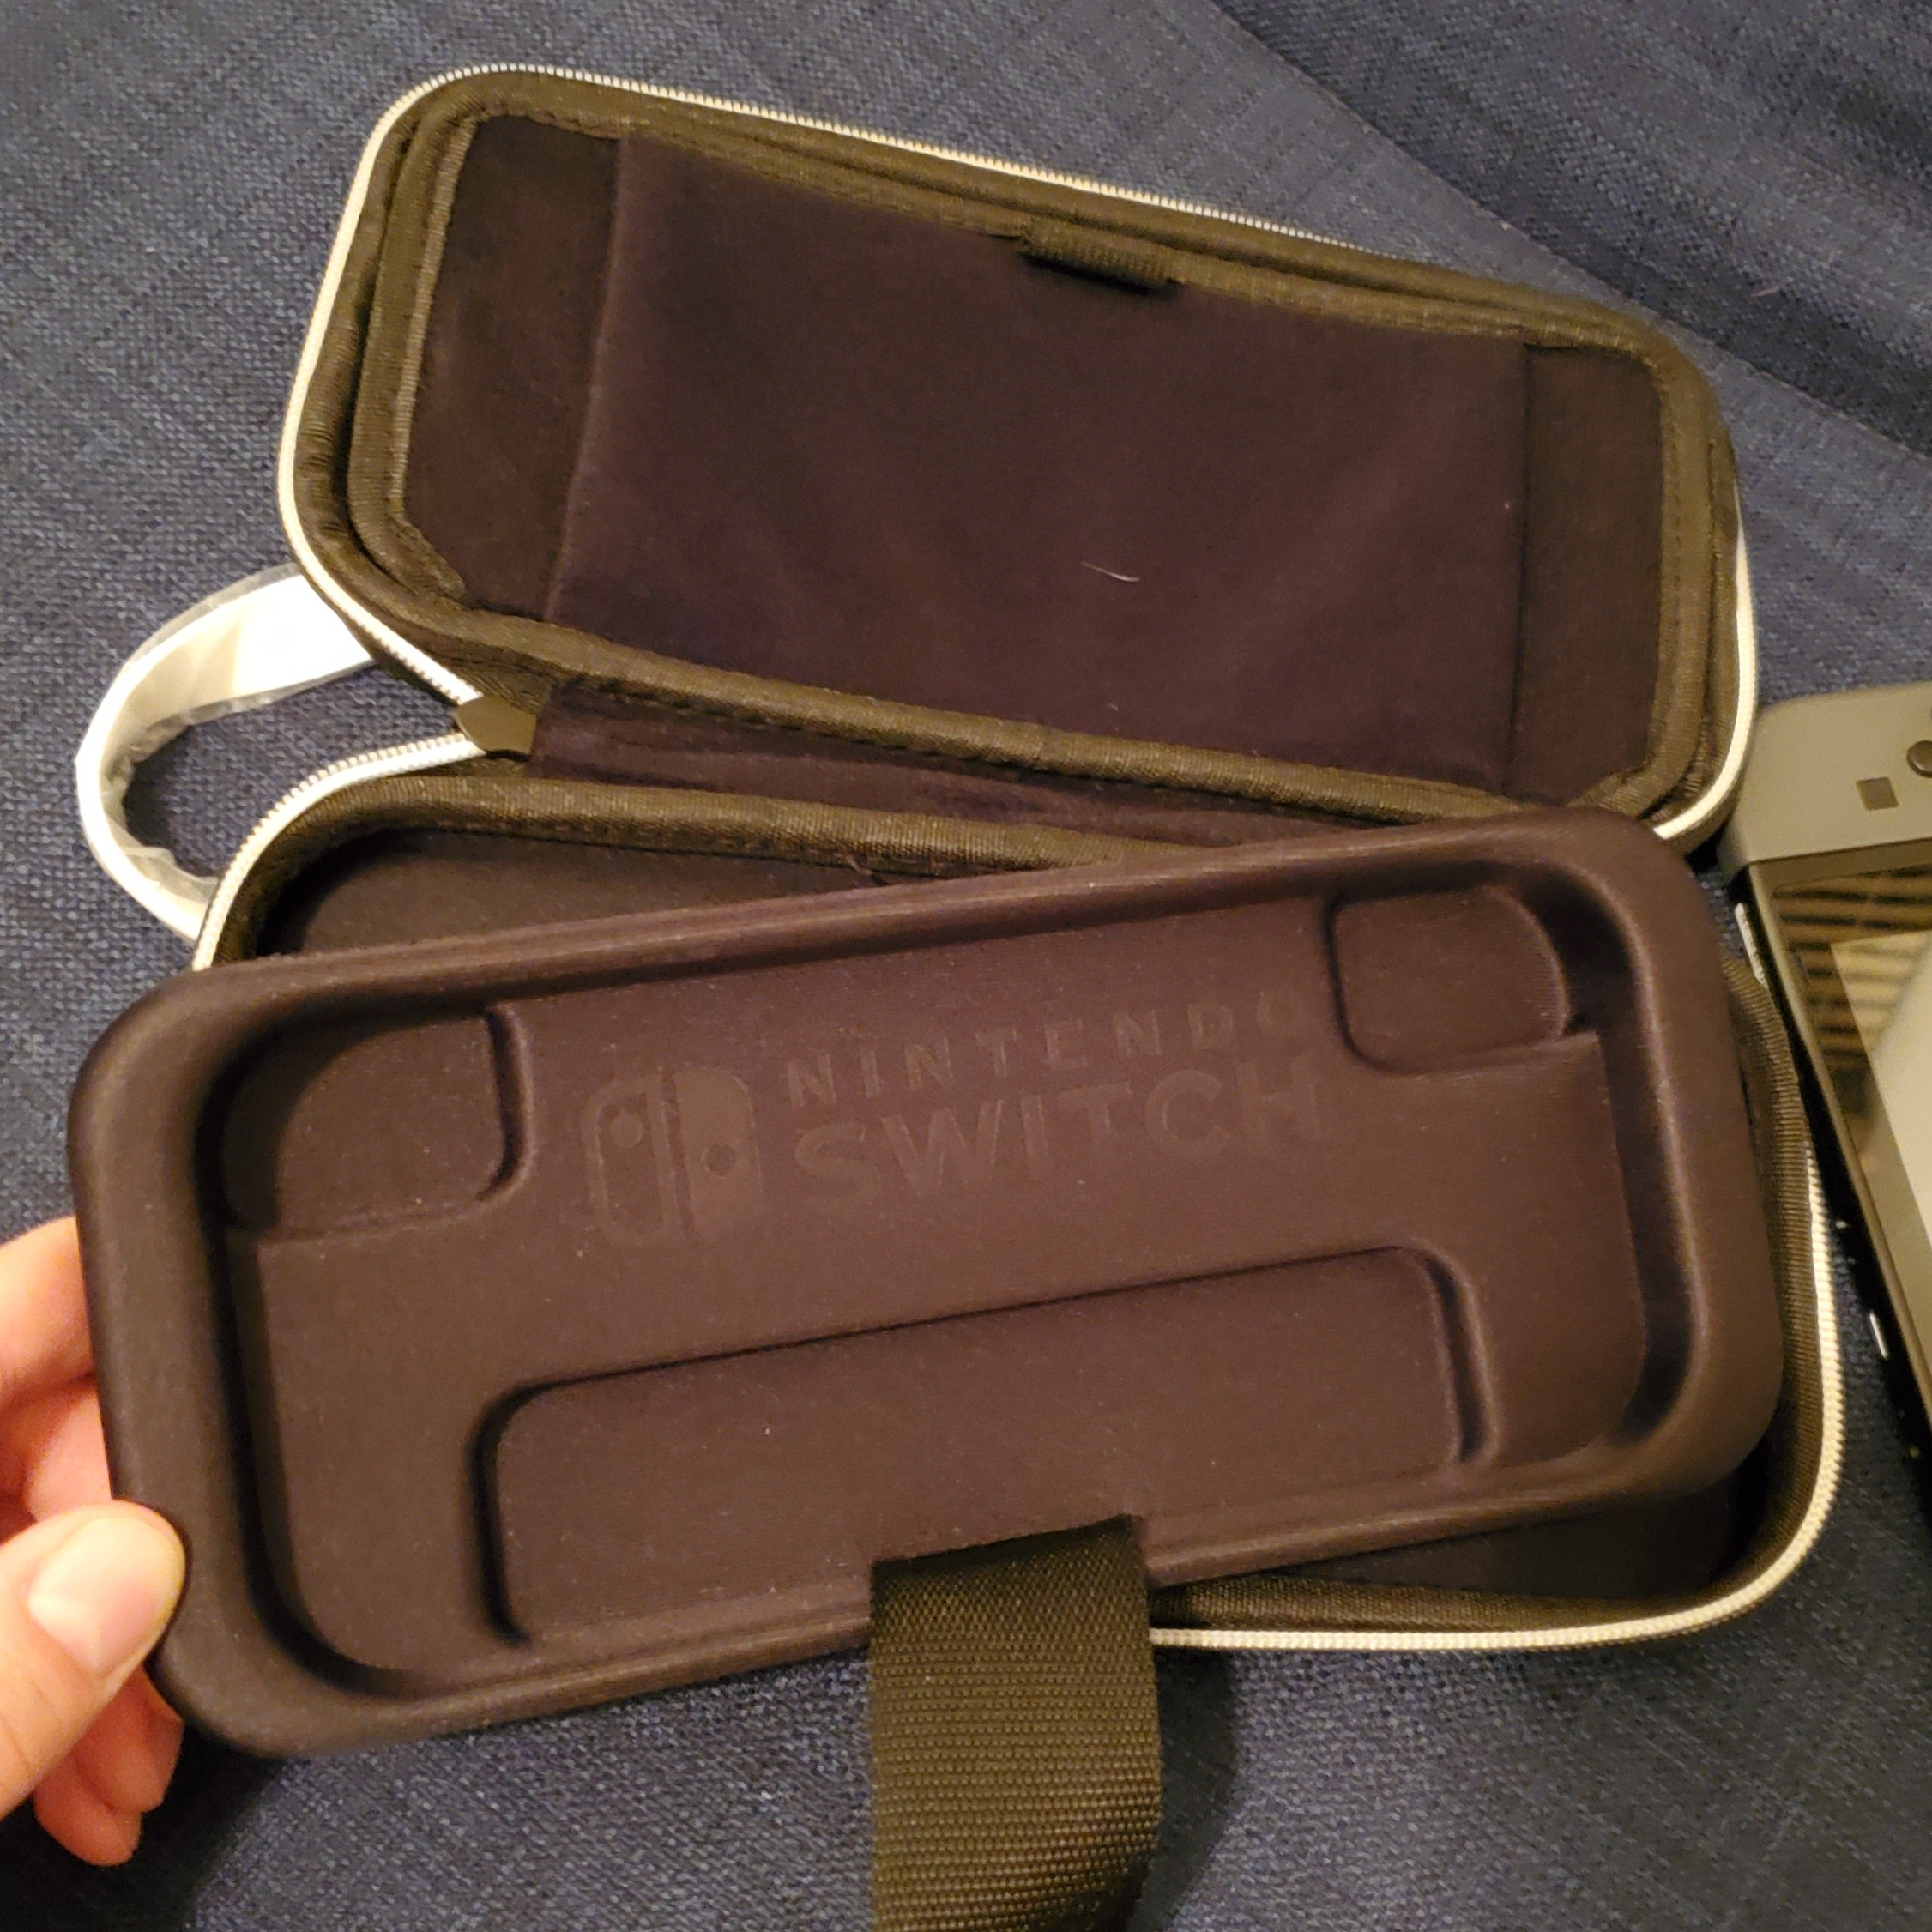 Switch Deluxe Travel Case review removable Switch Lite tray